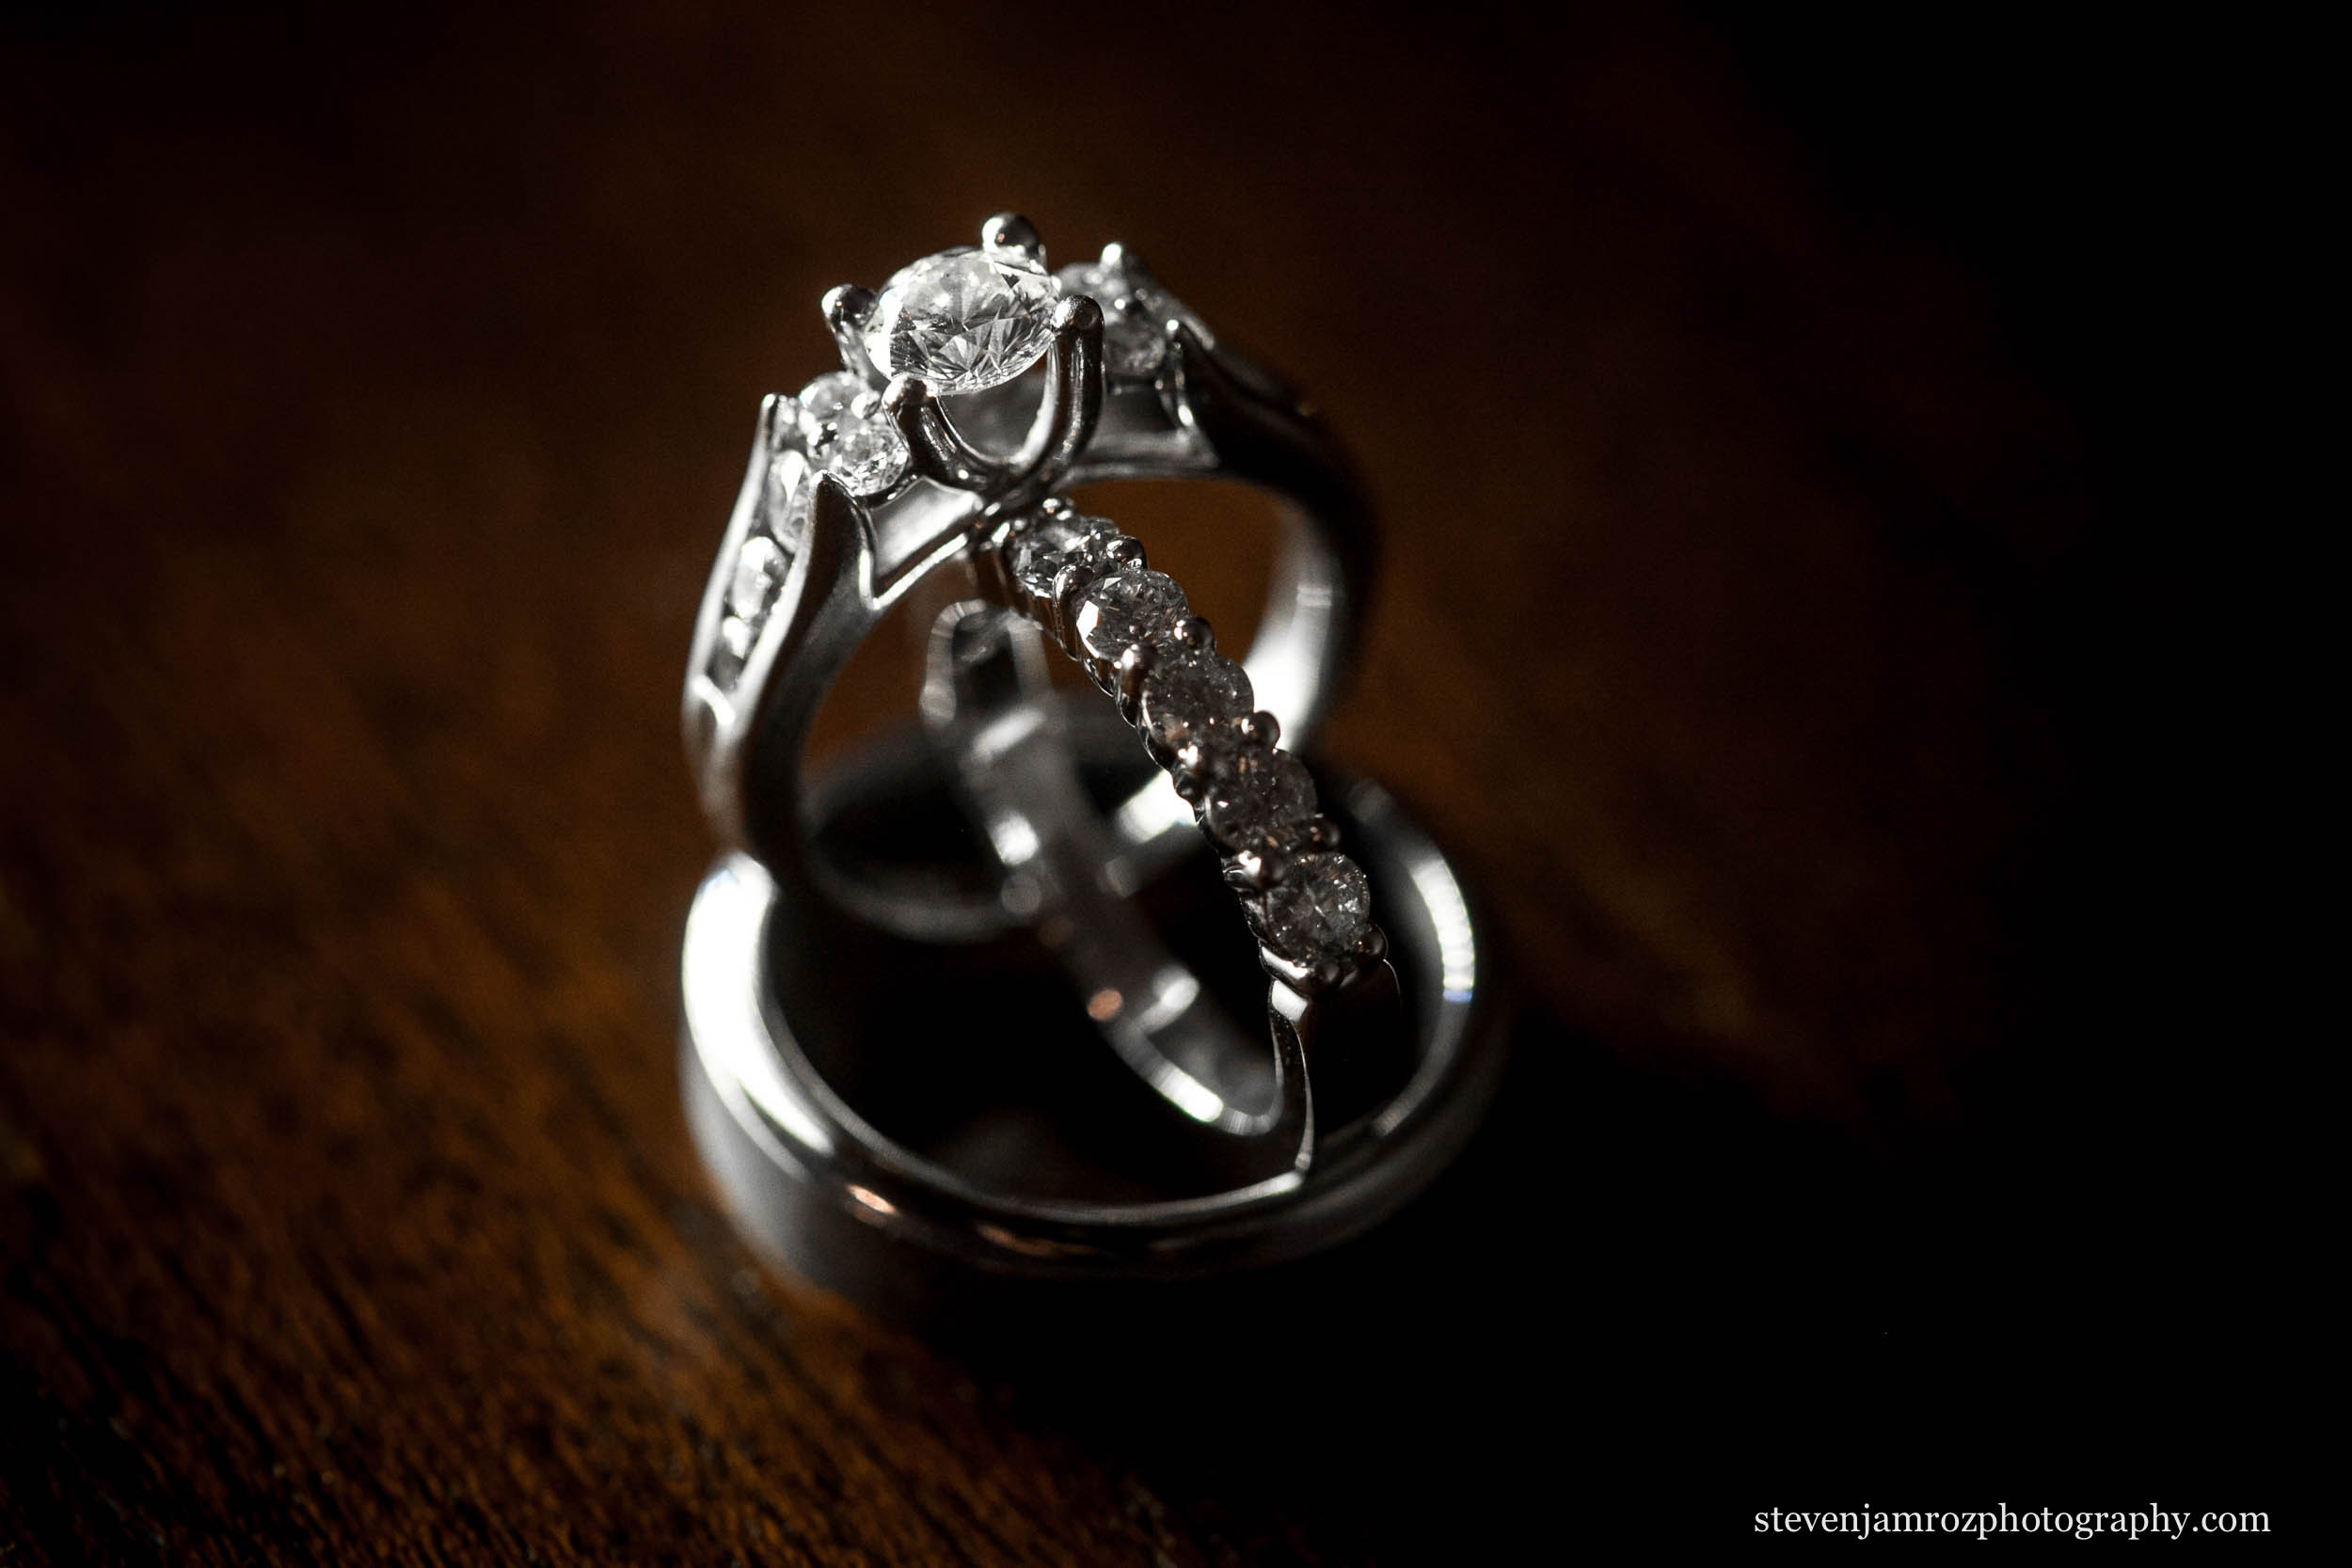 wedding-rings-raleigh-photographer-steven-jamroz-0641.jpg